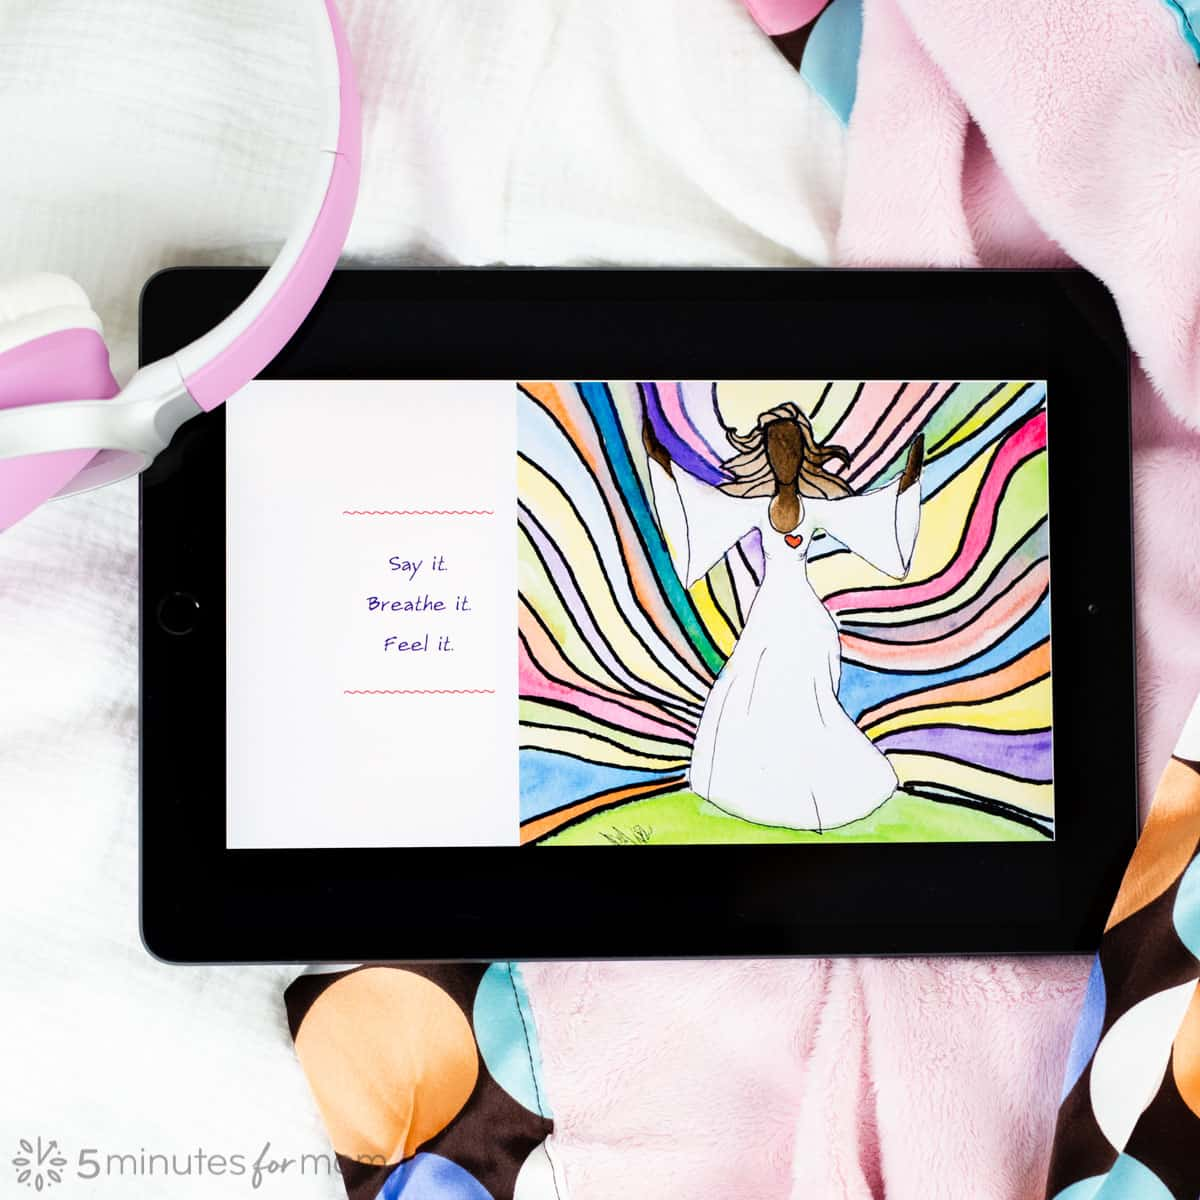 iPad showing colorful illustration from childrens book